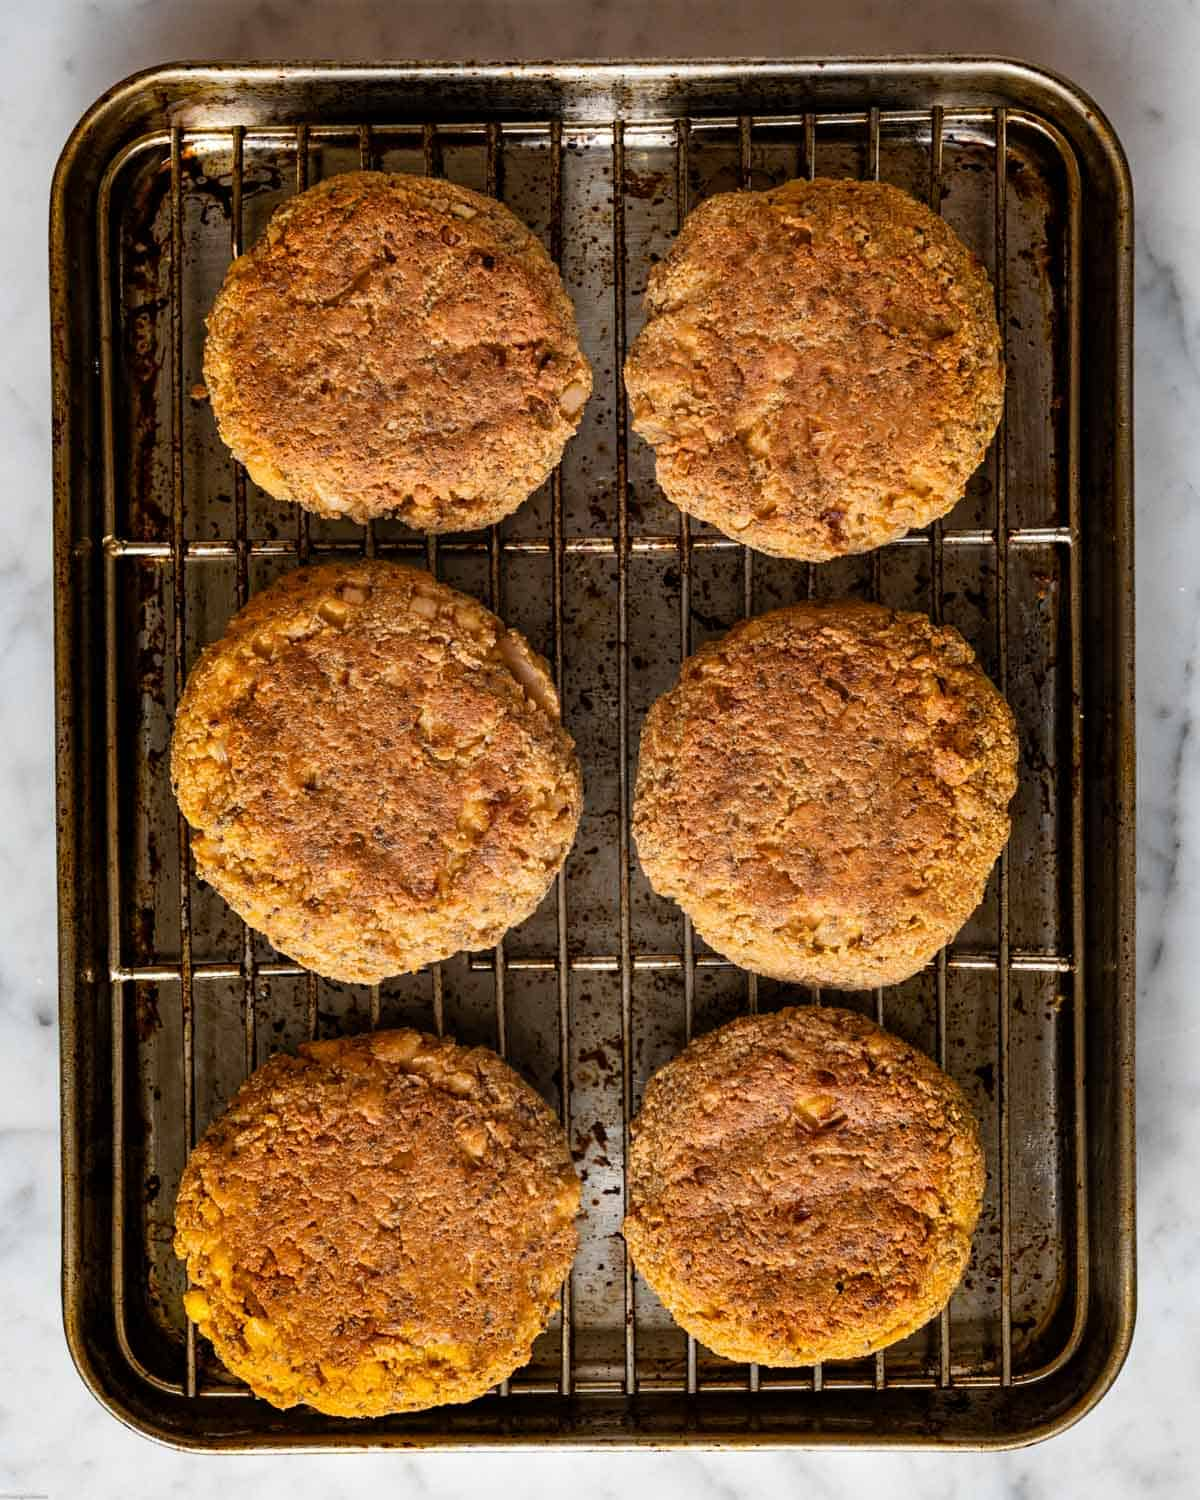 Baked vegan chipotle tofu burgers on a cooling rack.